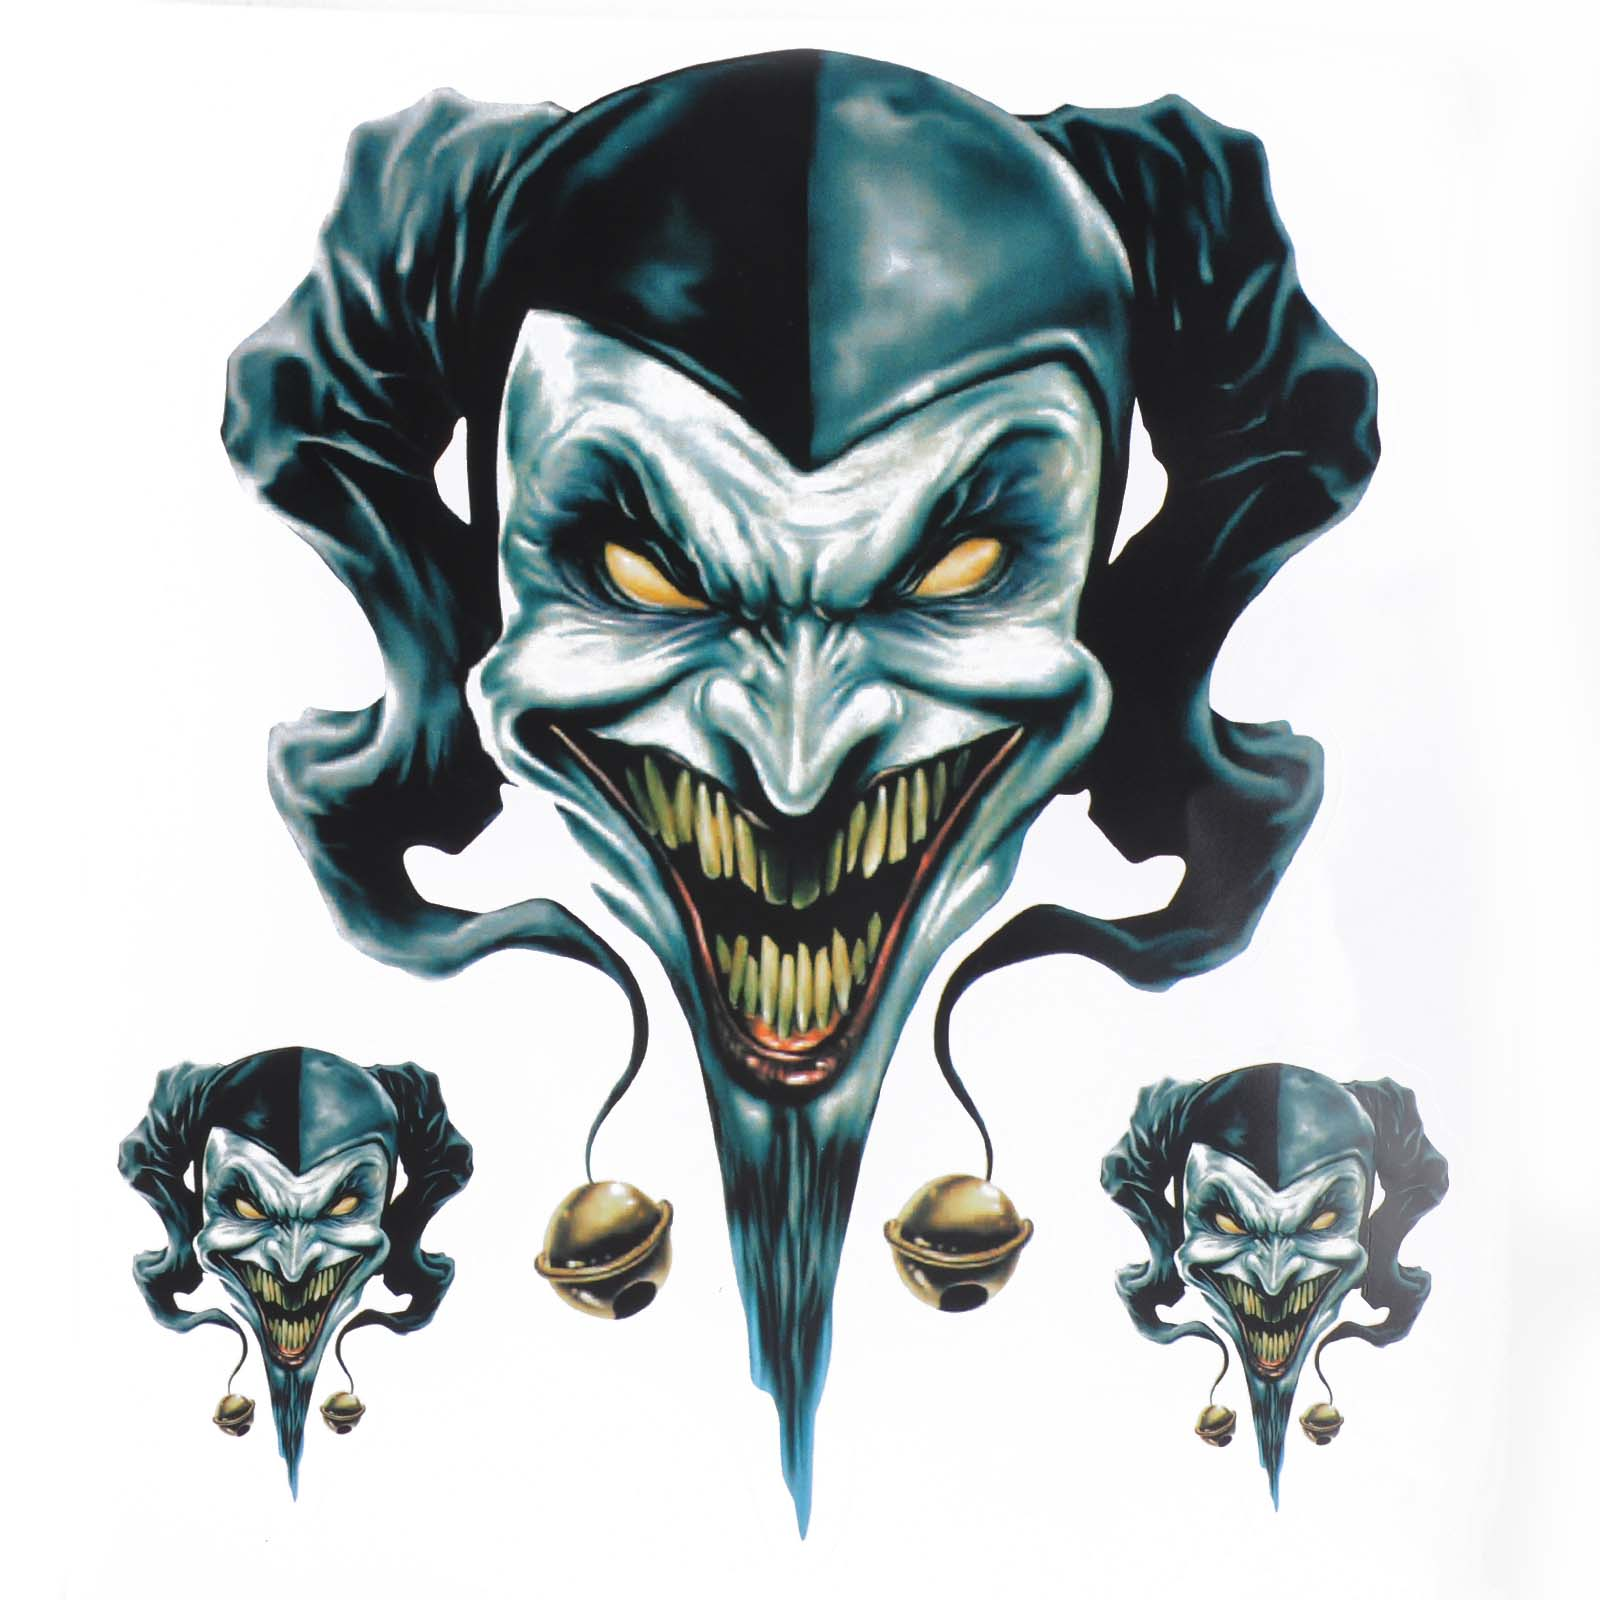 1 Set Cartoon Clown Jester Motorcycle Sticker For Motorbike Hoods Trunk Thriller Rear Window Decal Evil Clown Devil Decoration